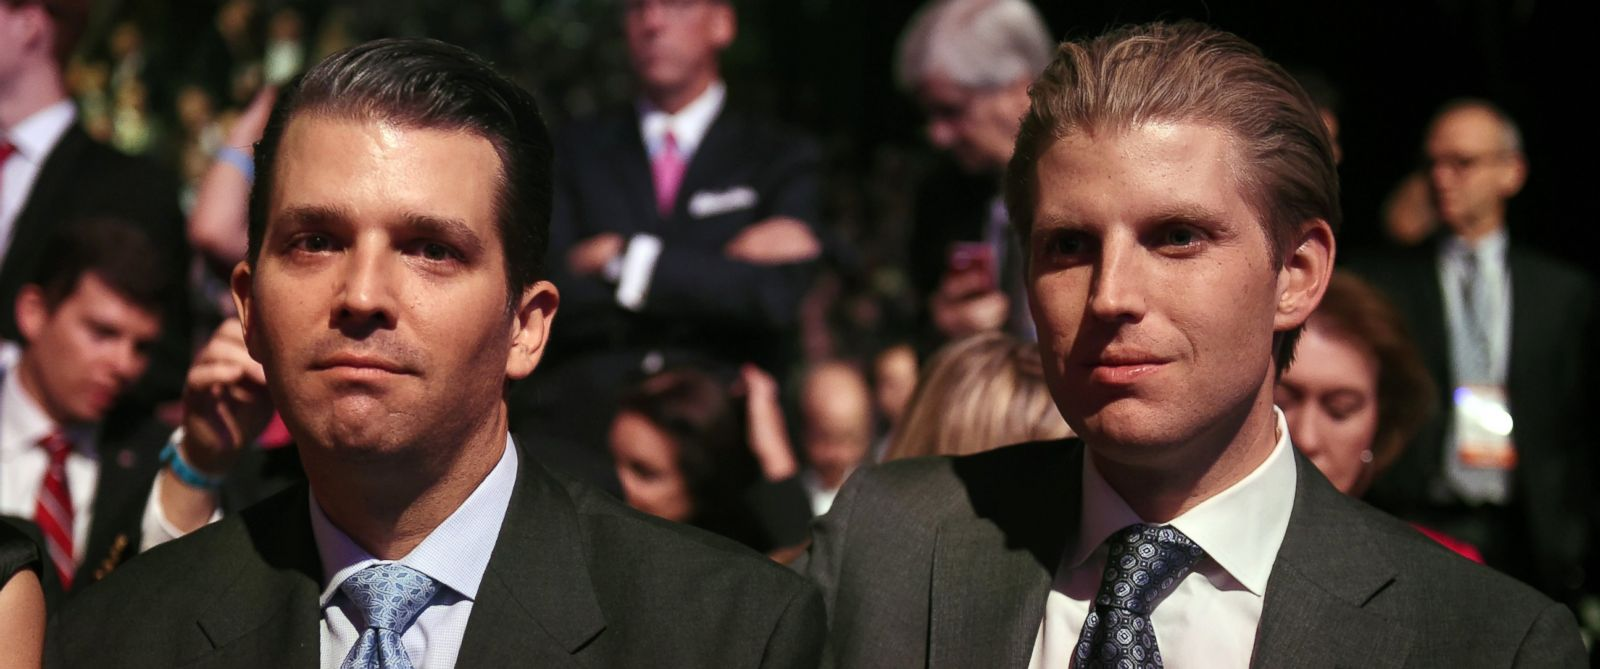 PHOTO: Donald Trumps sons Donald Trump Jr.and Eric Trump wait for the start of the CNBC Republican Presidential Debate, Oct. 28, 2015, at the Coors Event Center at the University of Colorado in Boulder, Colo.